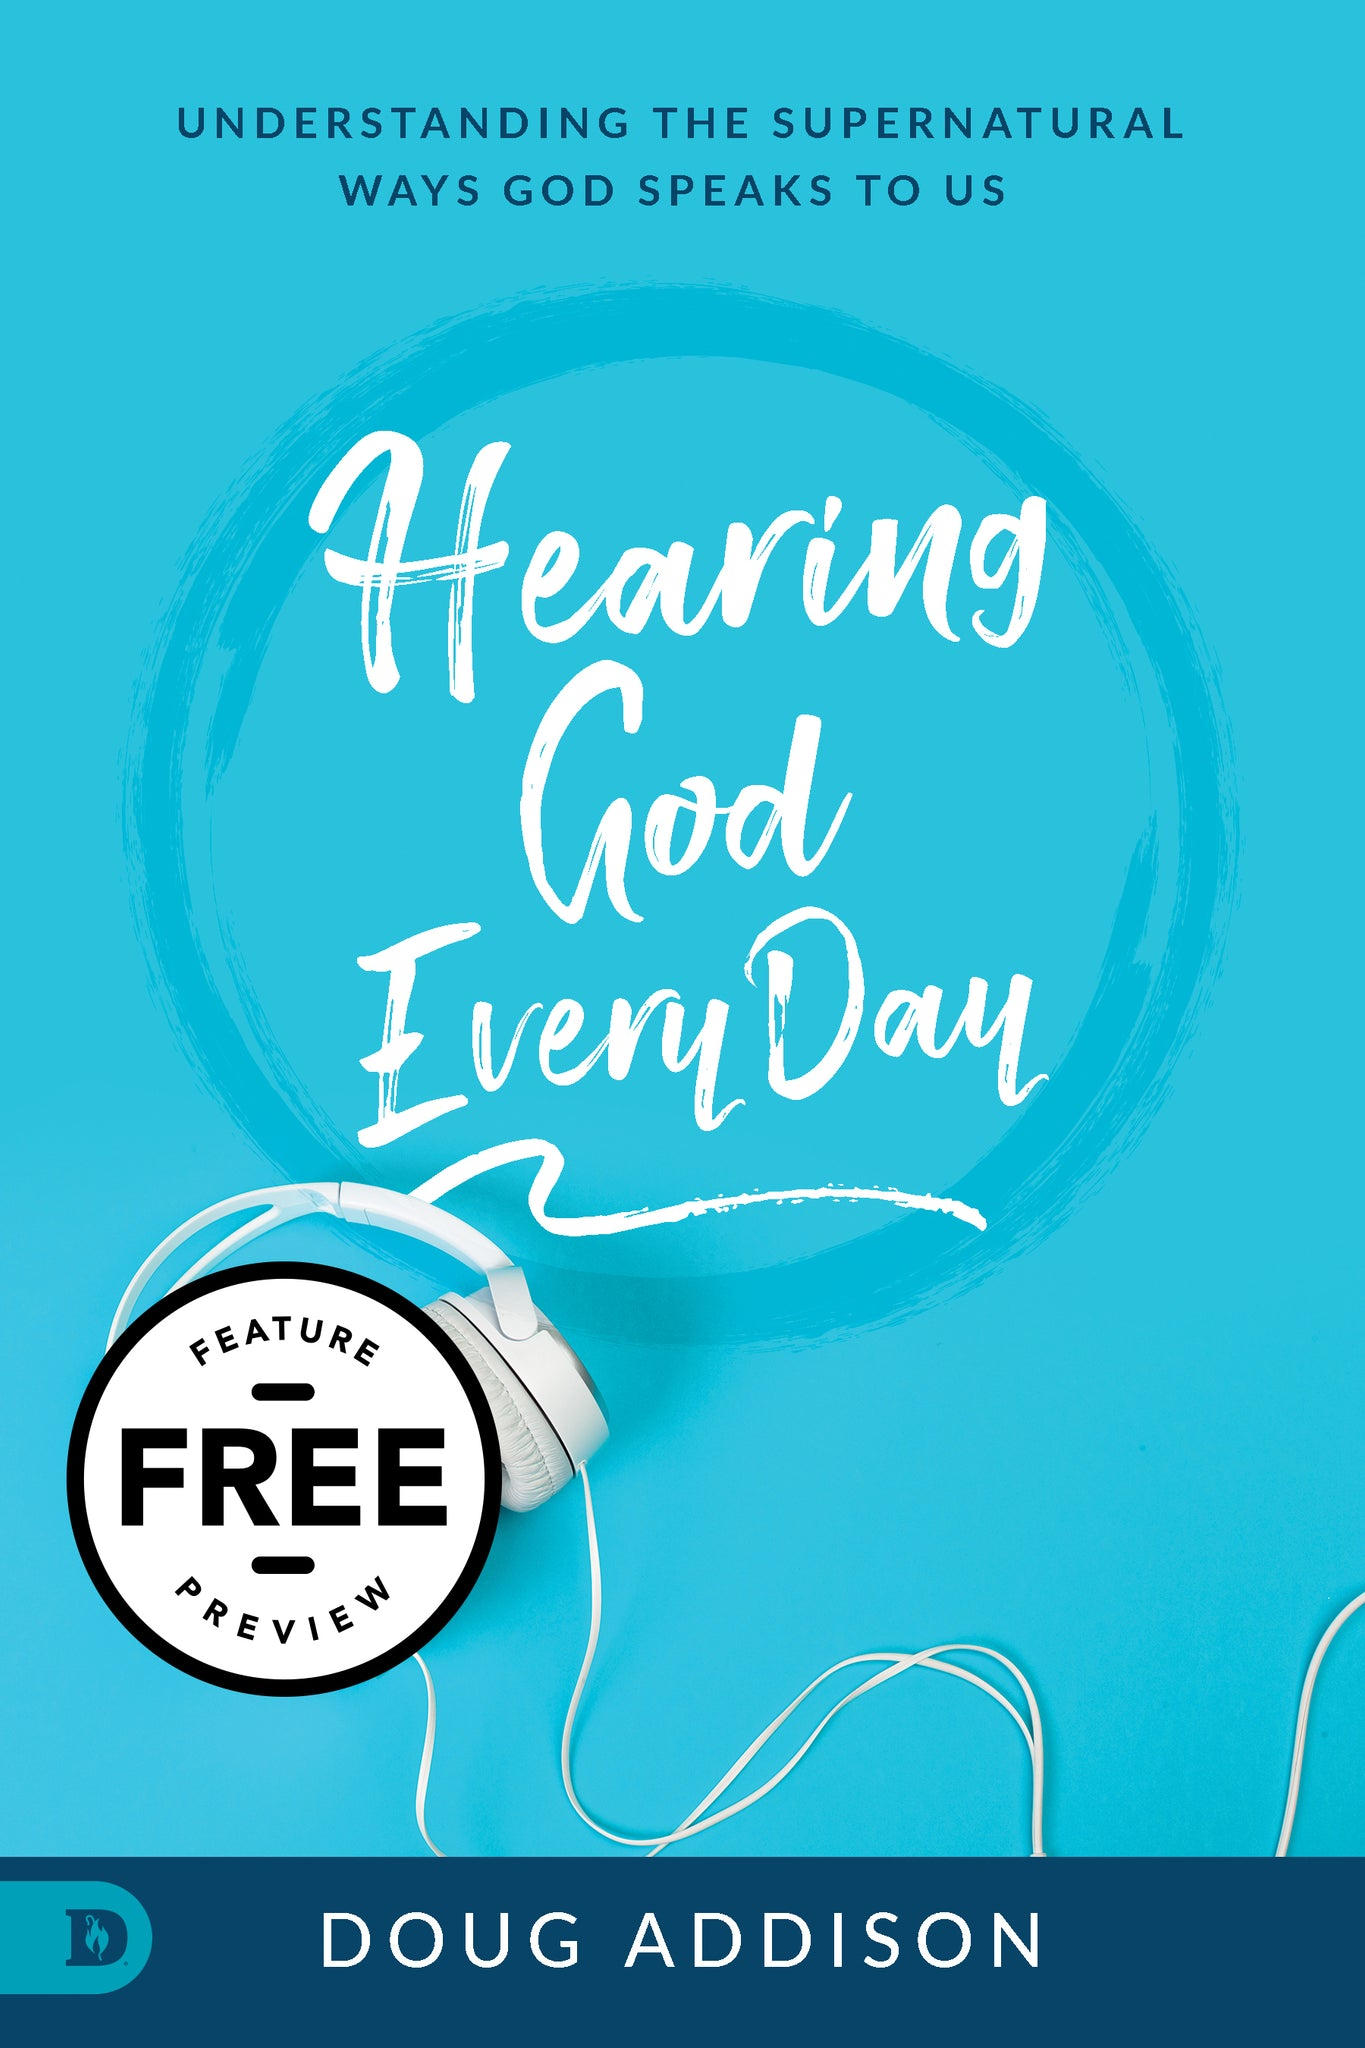 Hearing God Every Day Free Feature Message (PDF Download)